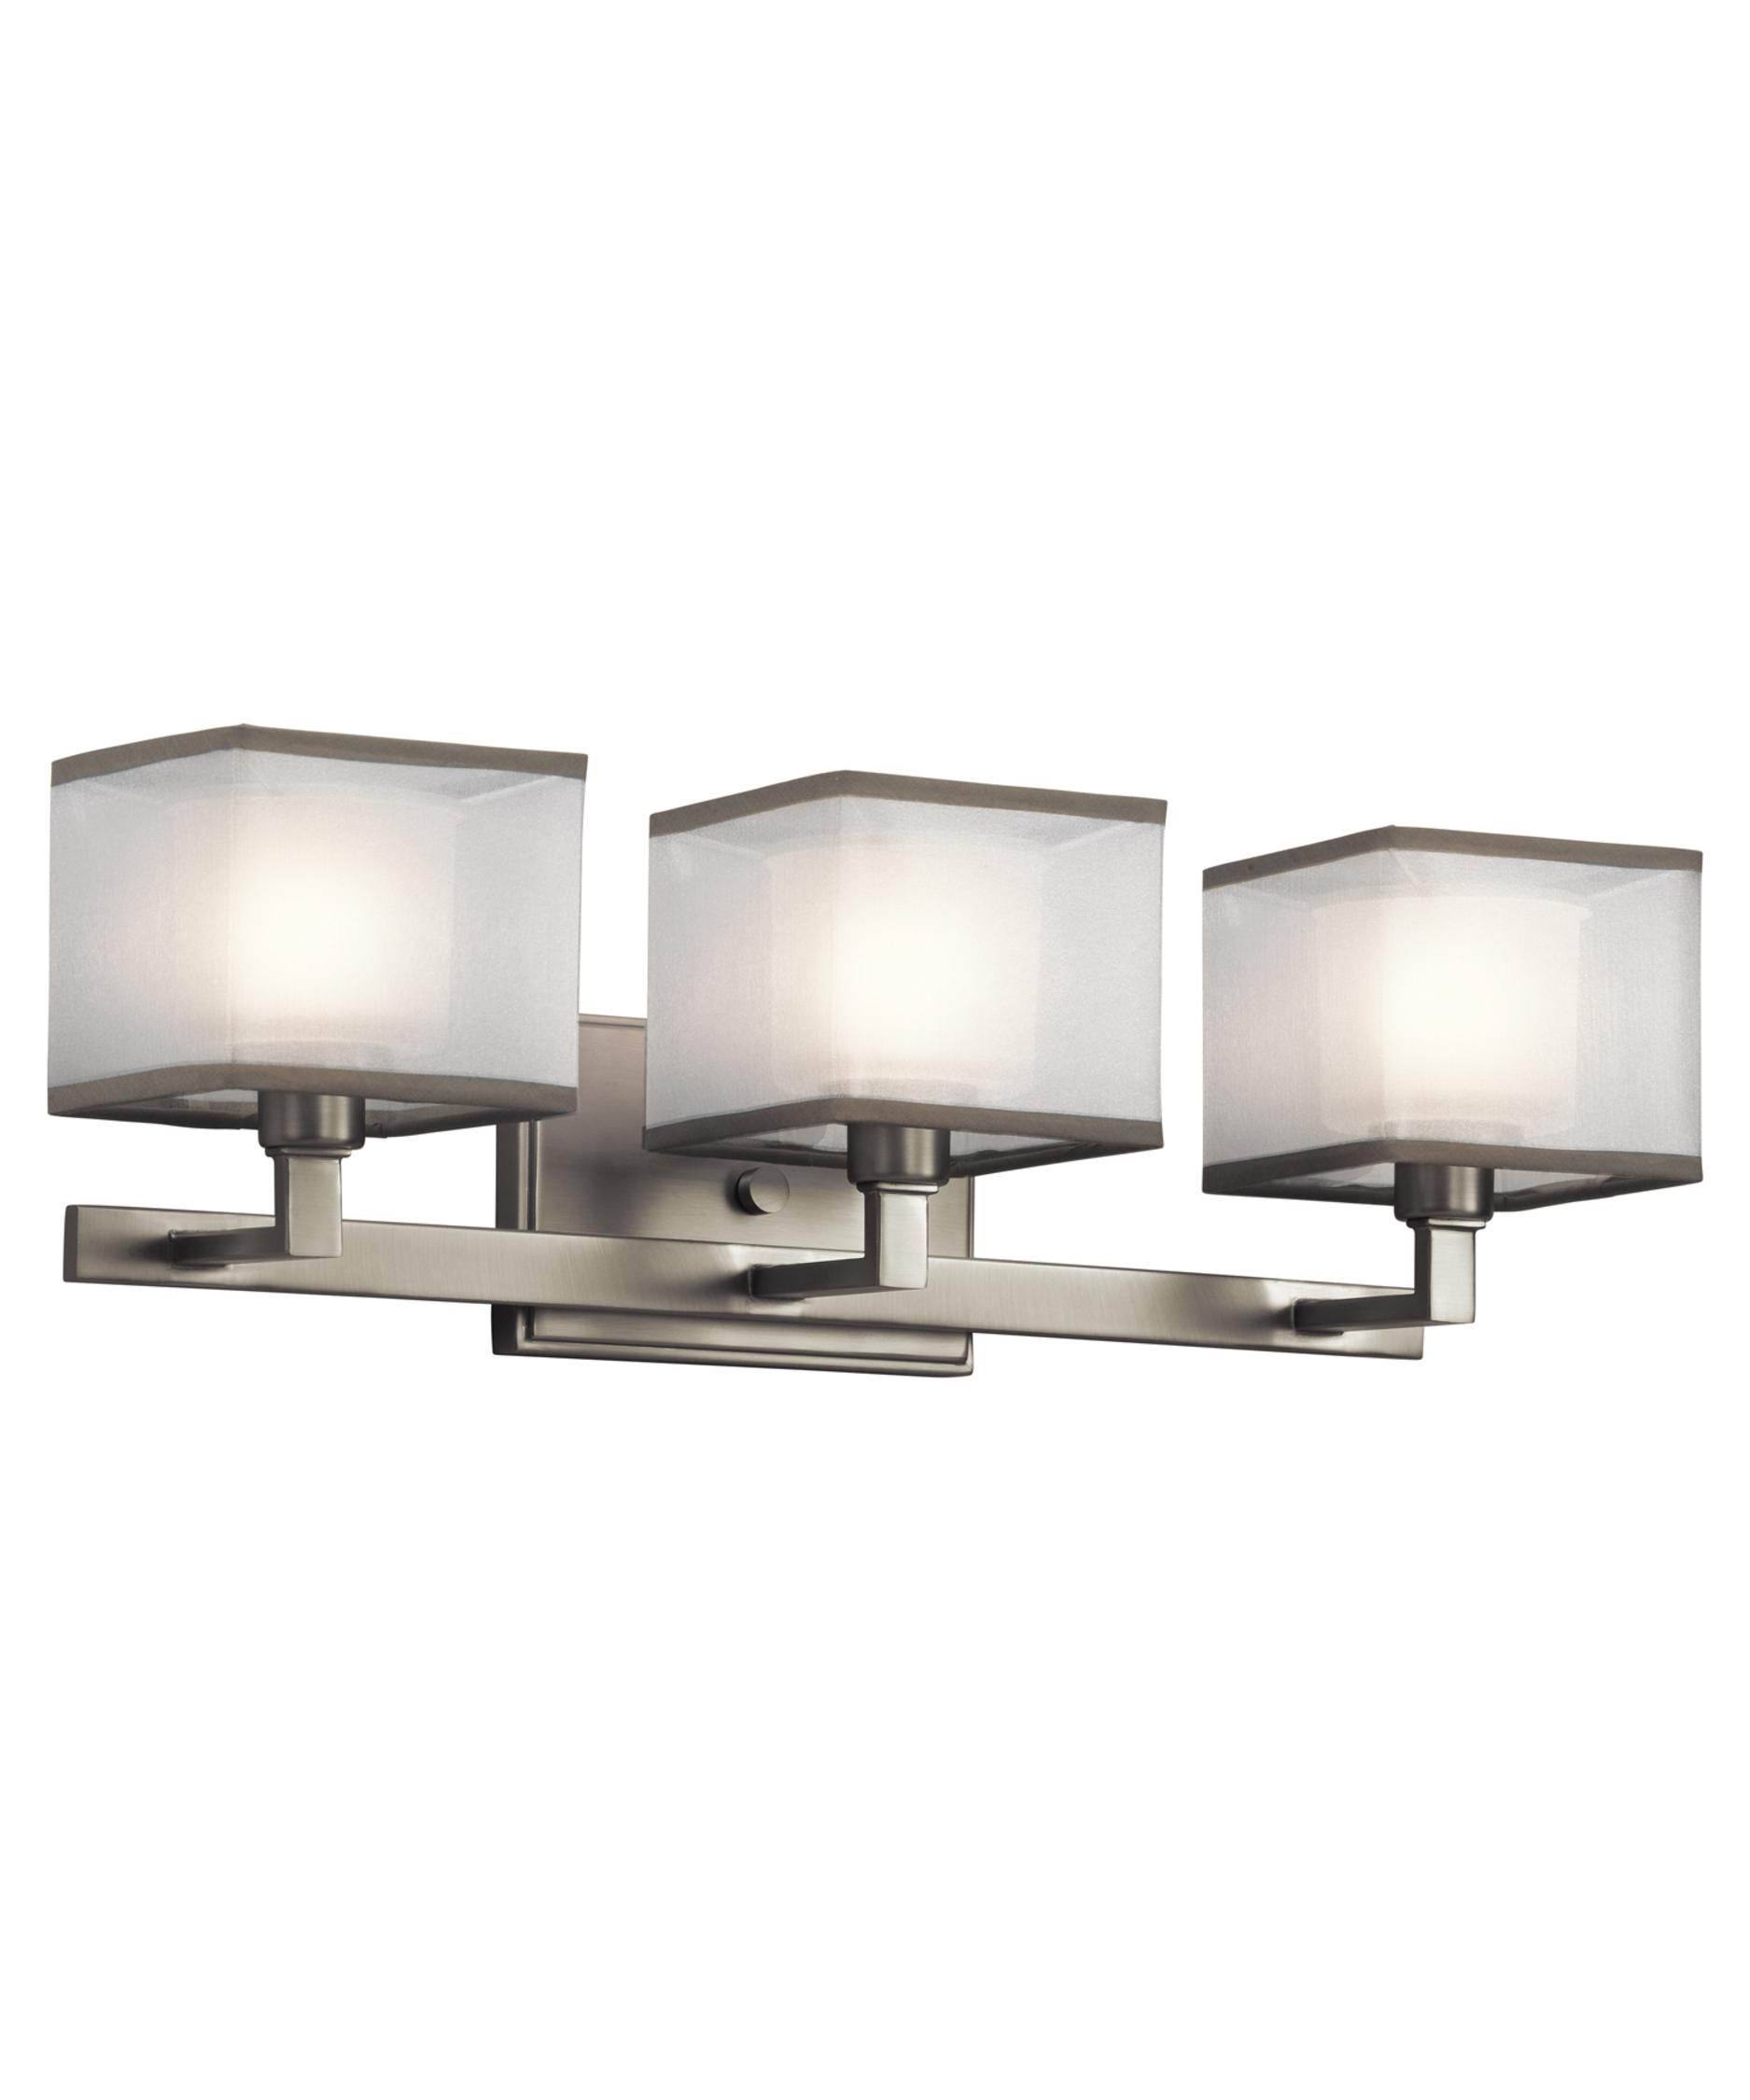 Bathroom Vanity Lights Kichler kichler 45439 kailey 22 inch wide bath vanity light | capitol